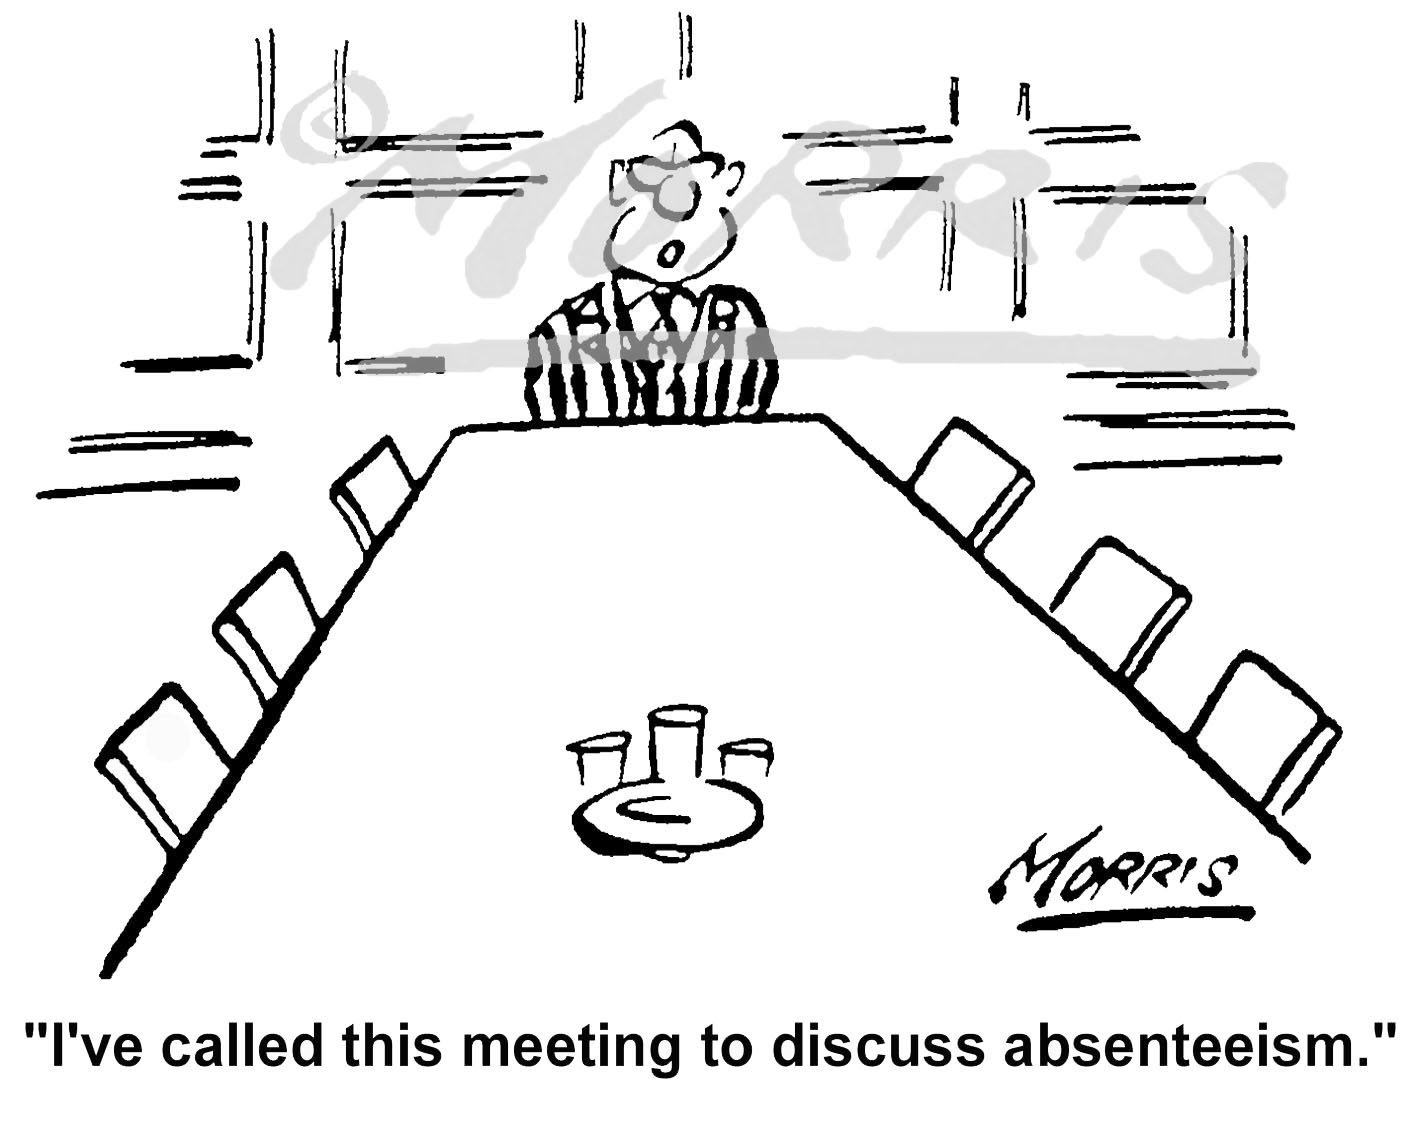 Boardroom cartoons, Boardroom meeting cartoon and Managing absenteeism cartoons – Ref: 5346bw